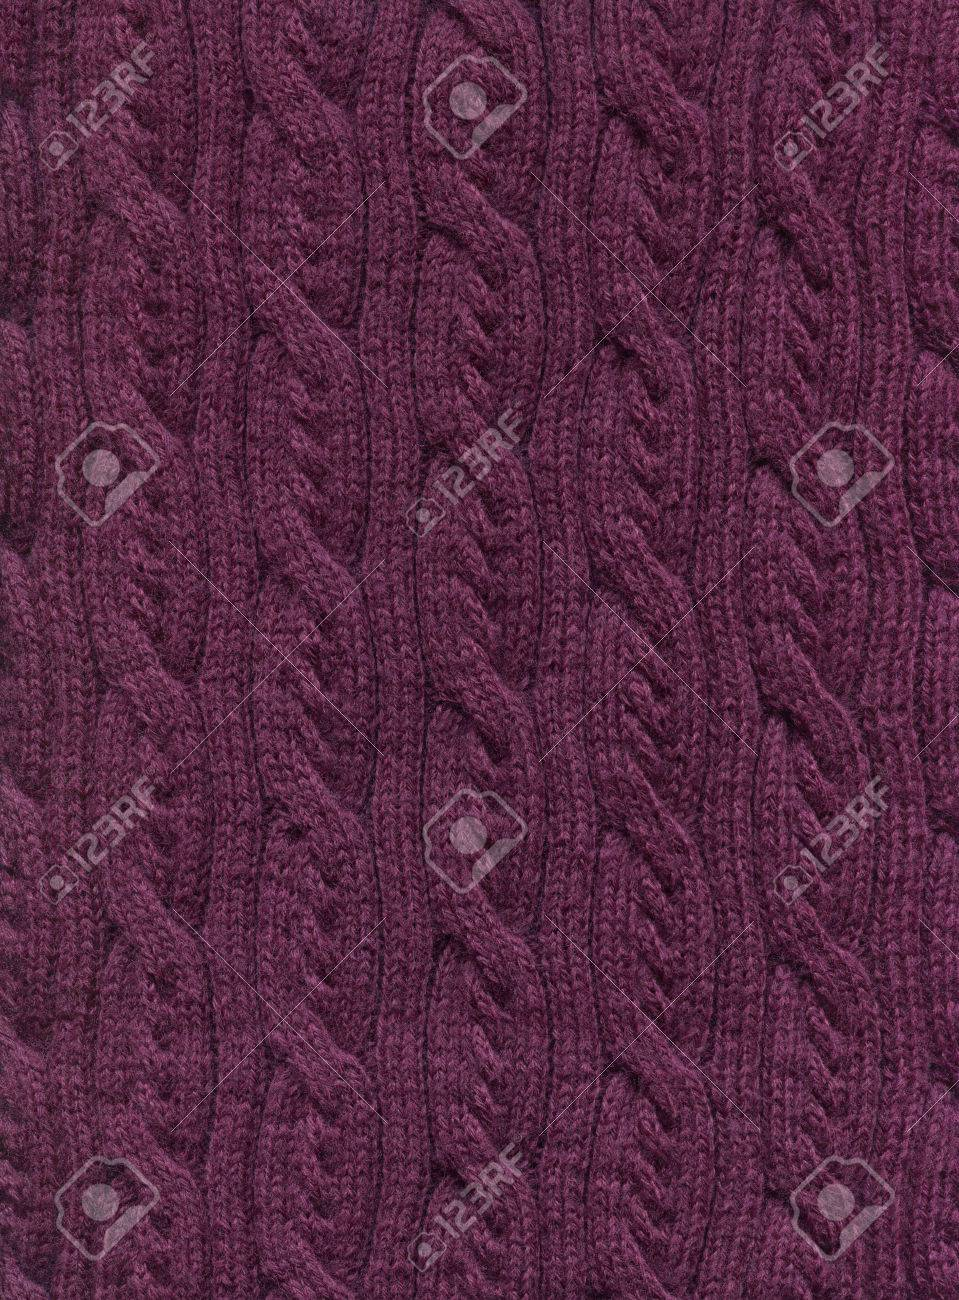 Knitted fabric with a pattern of vertical braids.Decorative material, background, texture, wallpaper - 69736110